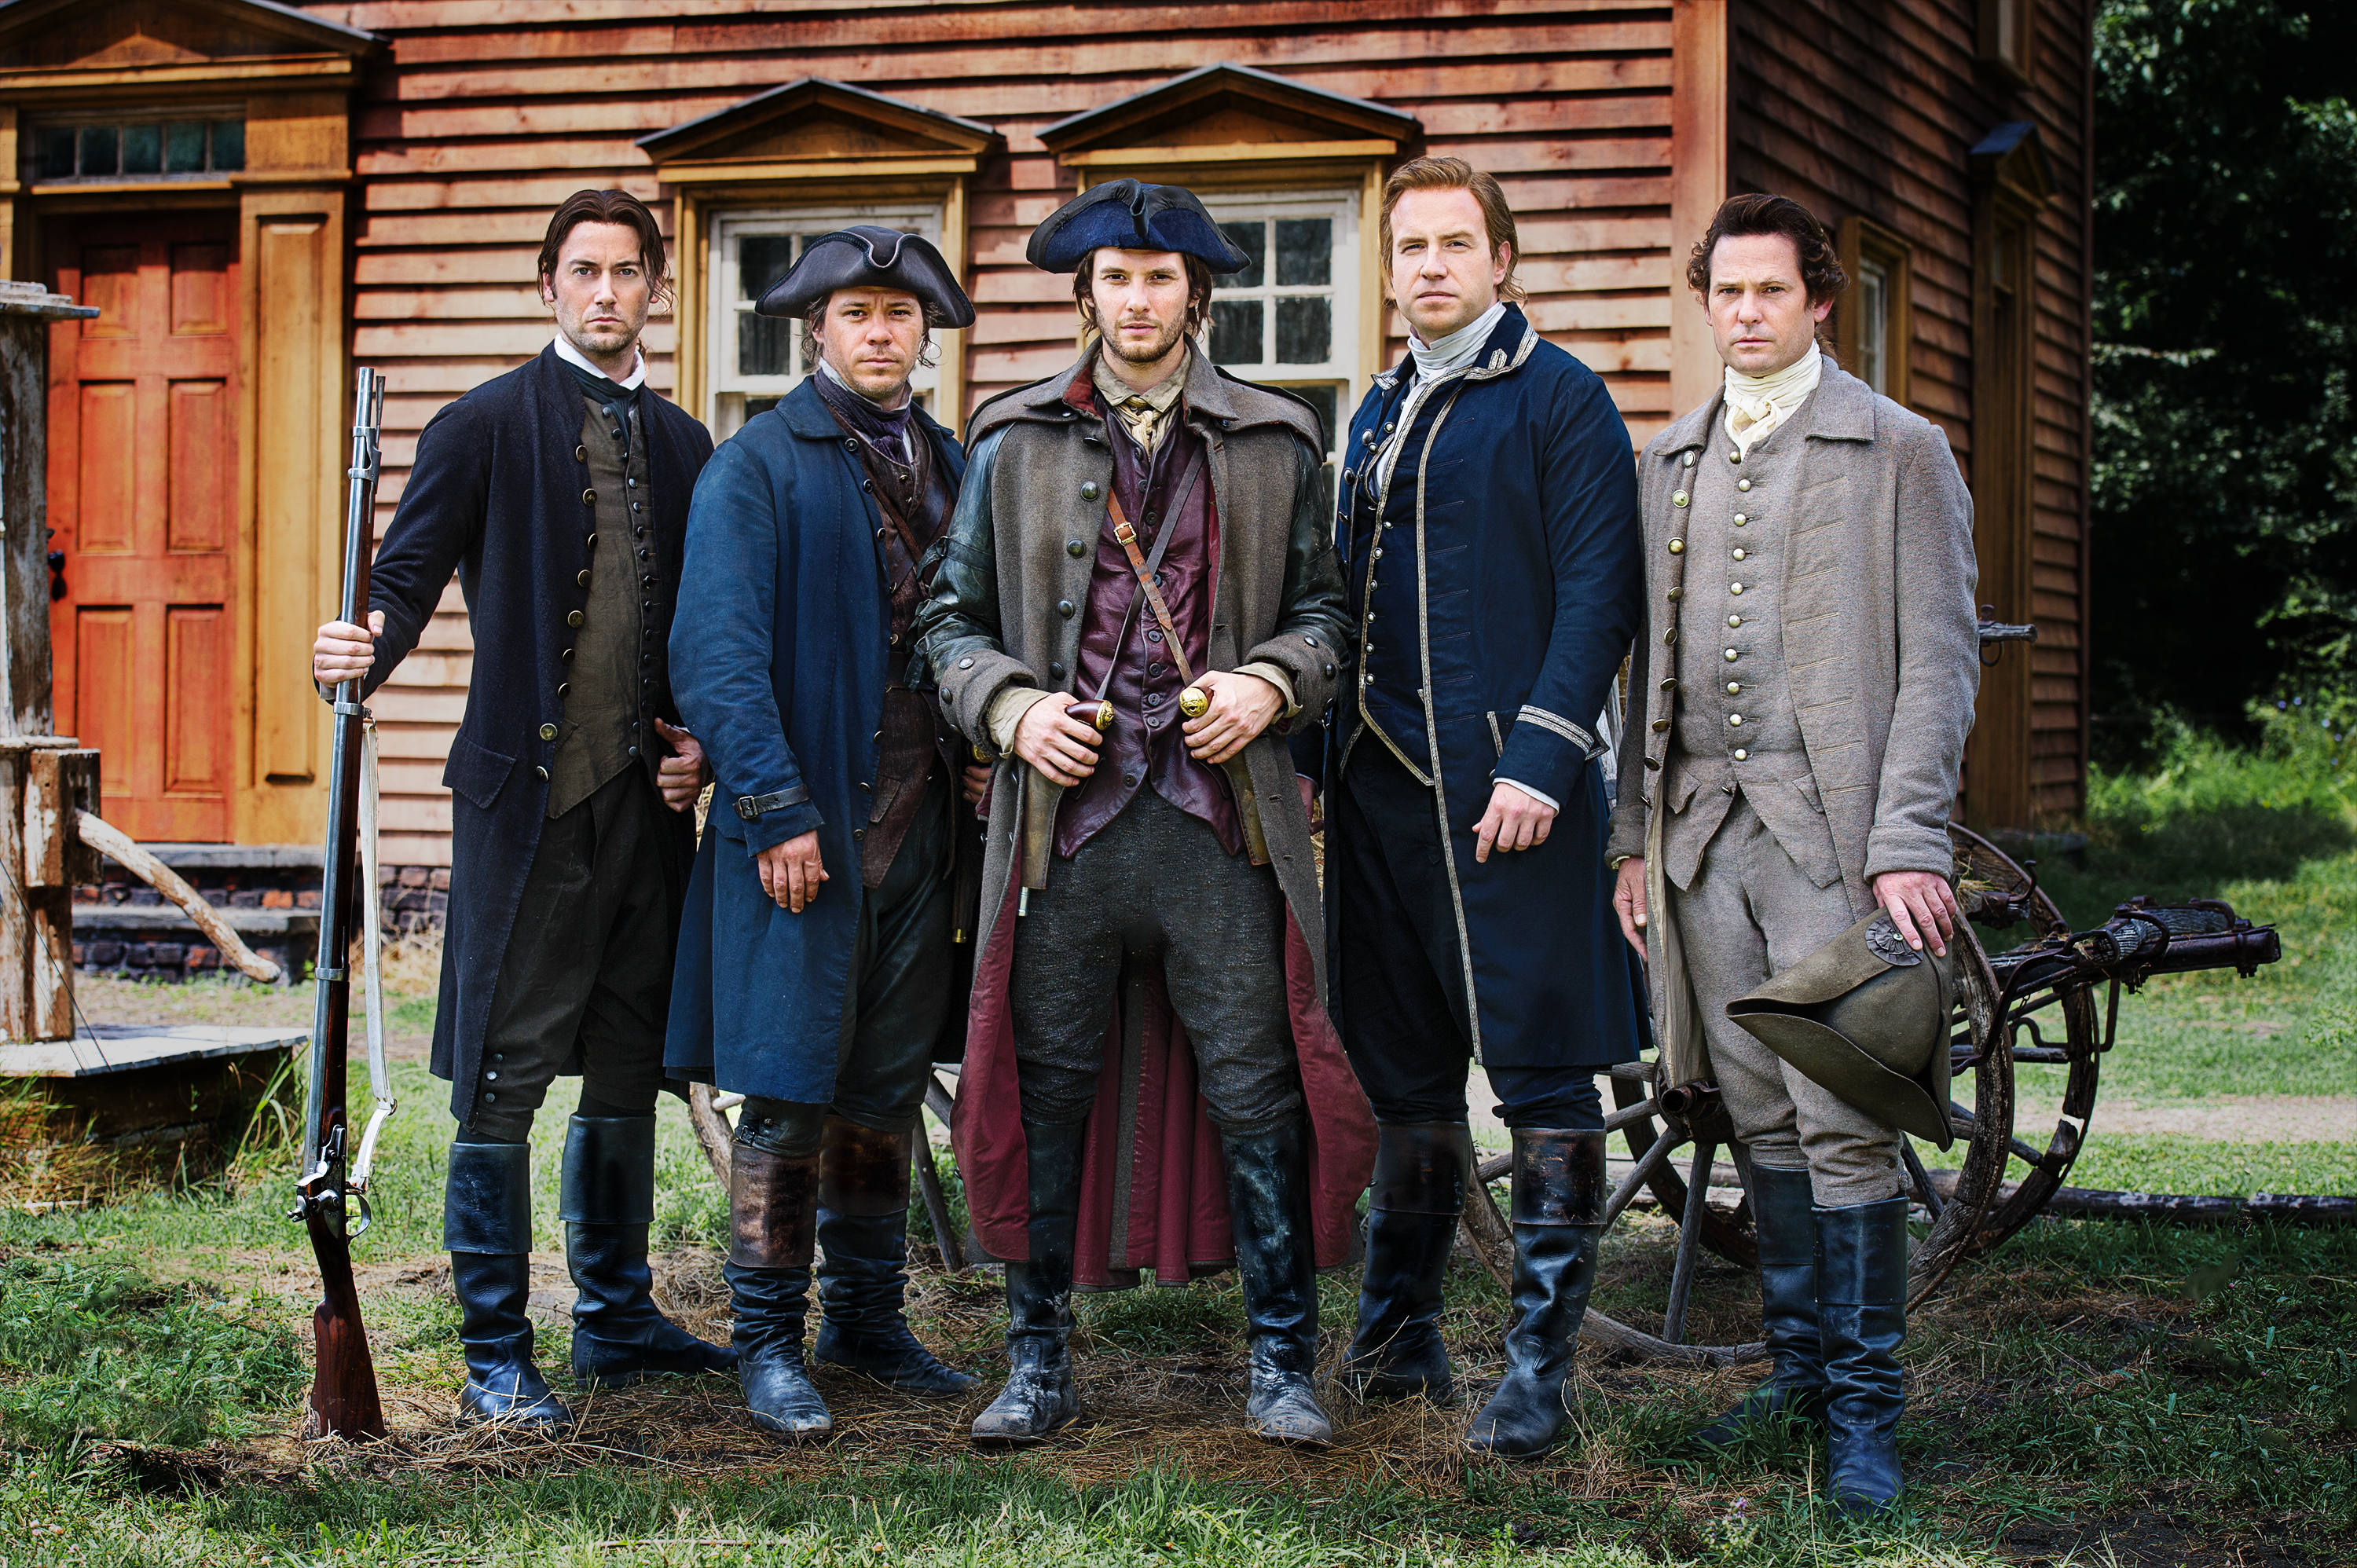 Sons_of_Liberty_promotional_photo.jpg